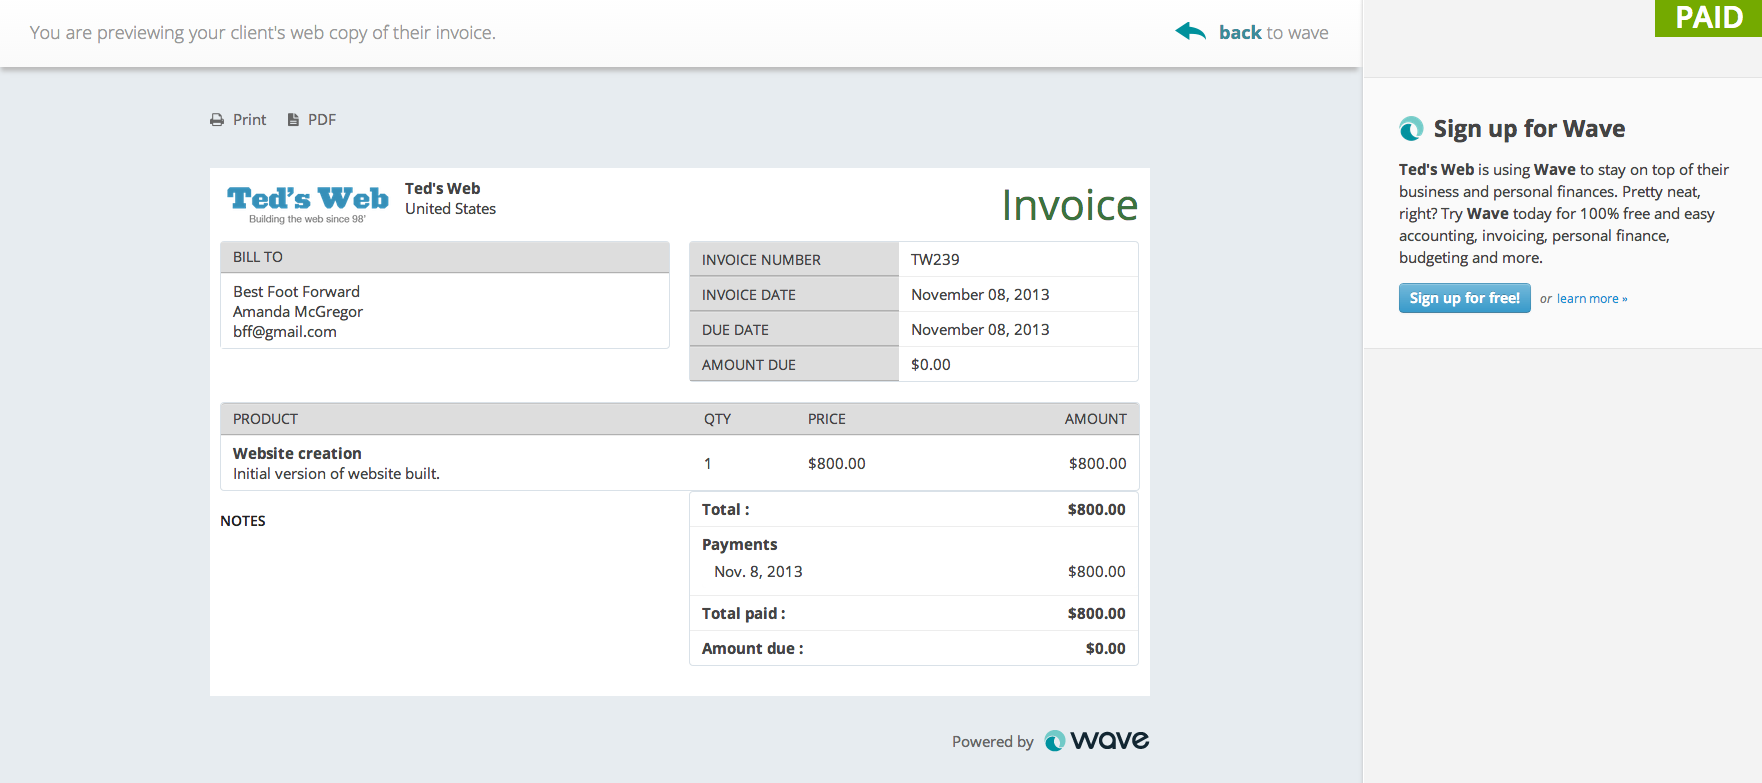 Full Invoicing Cycle Image2  Invoice For Payment